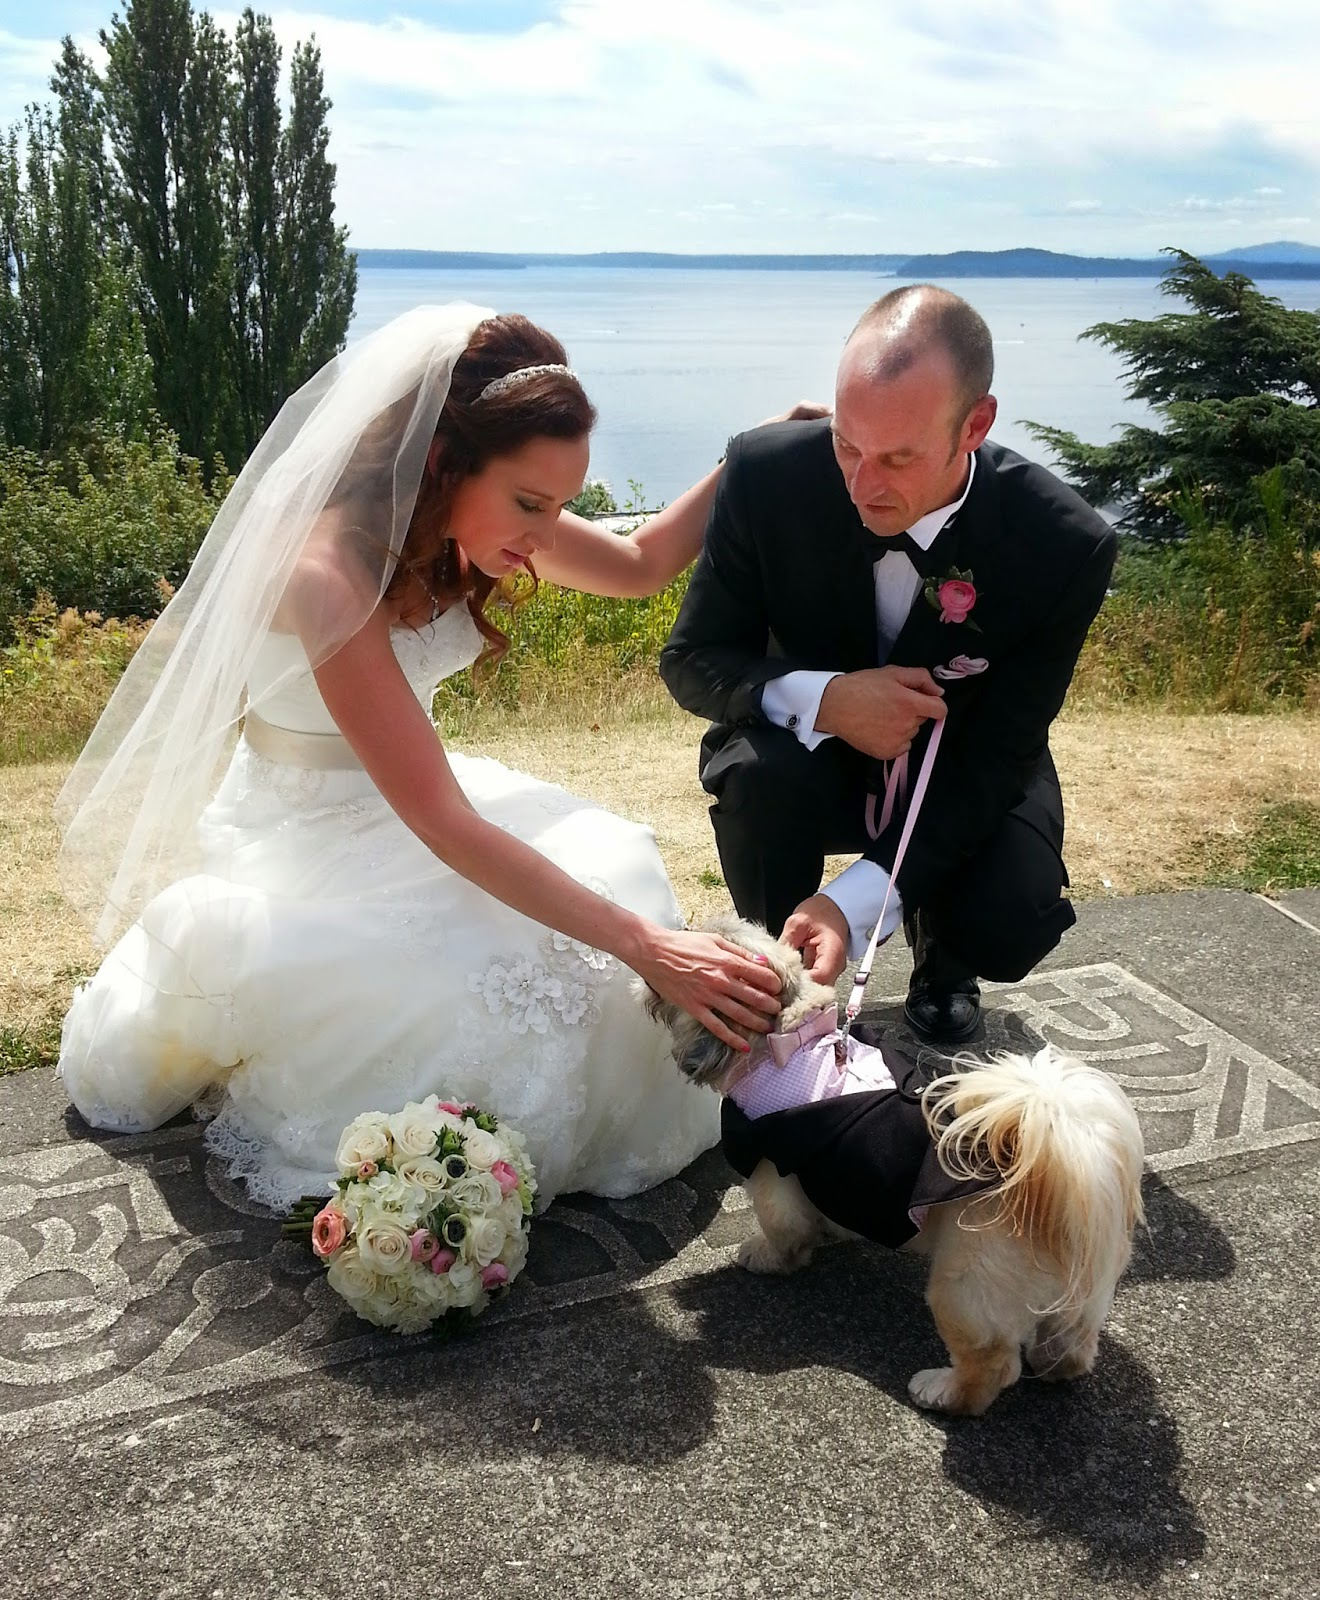 Elisha and Anthony with their dog, Chewie, after their wedding ceremony - Patricia Stimac, Seattle Wedding Officiant